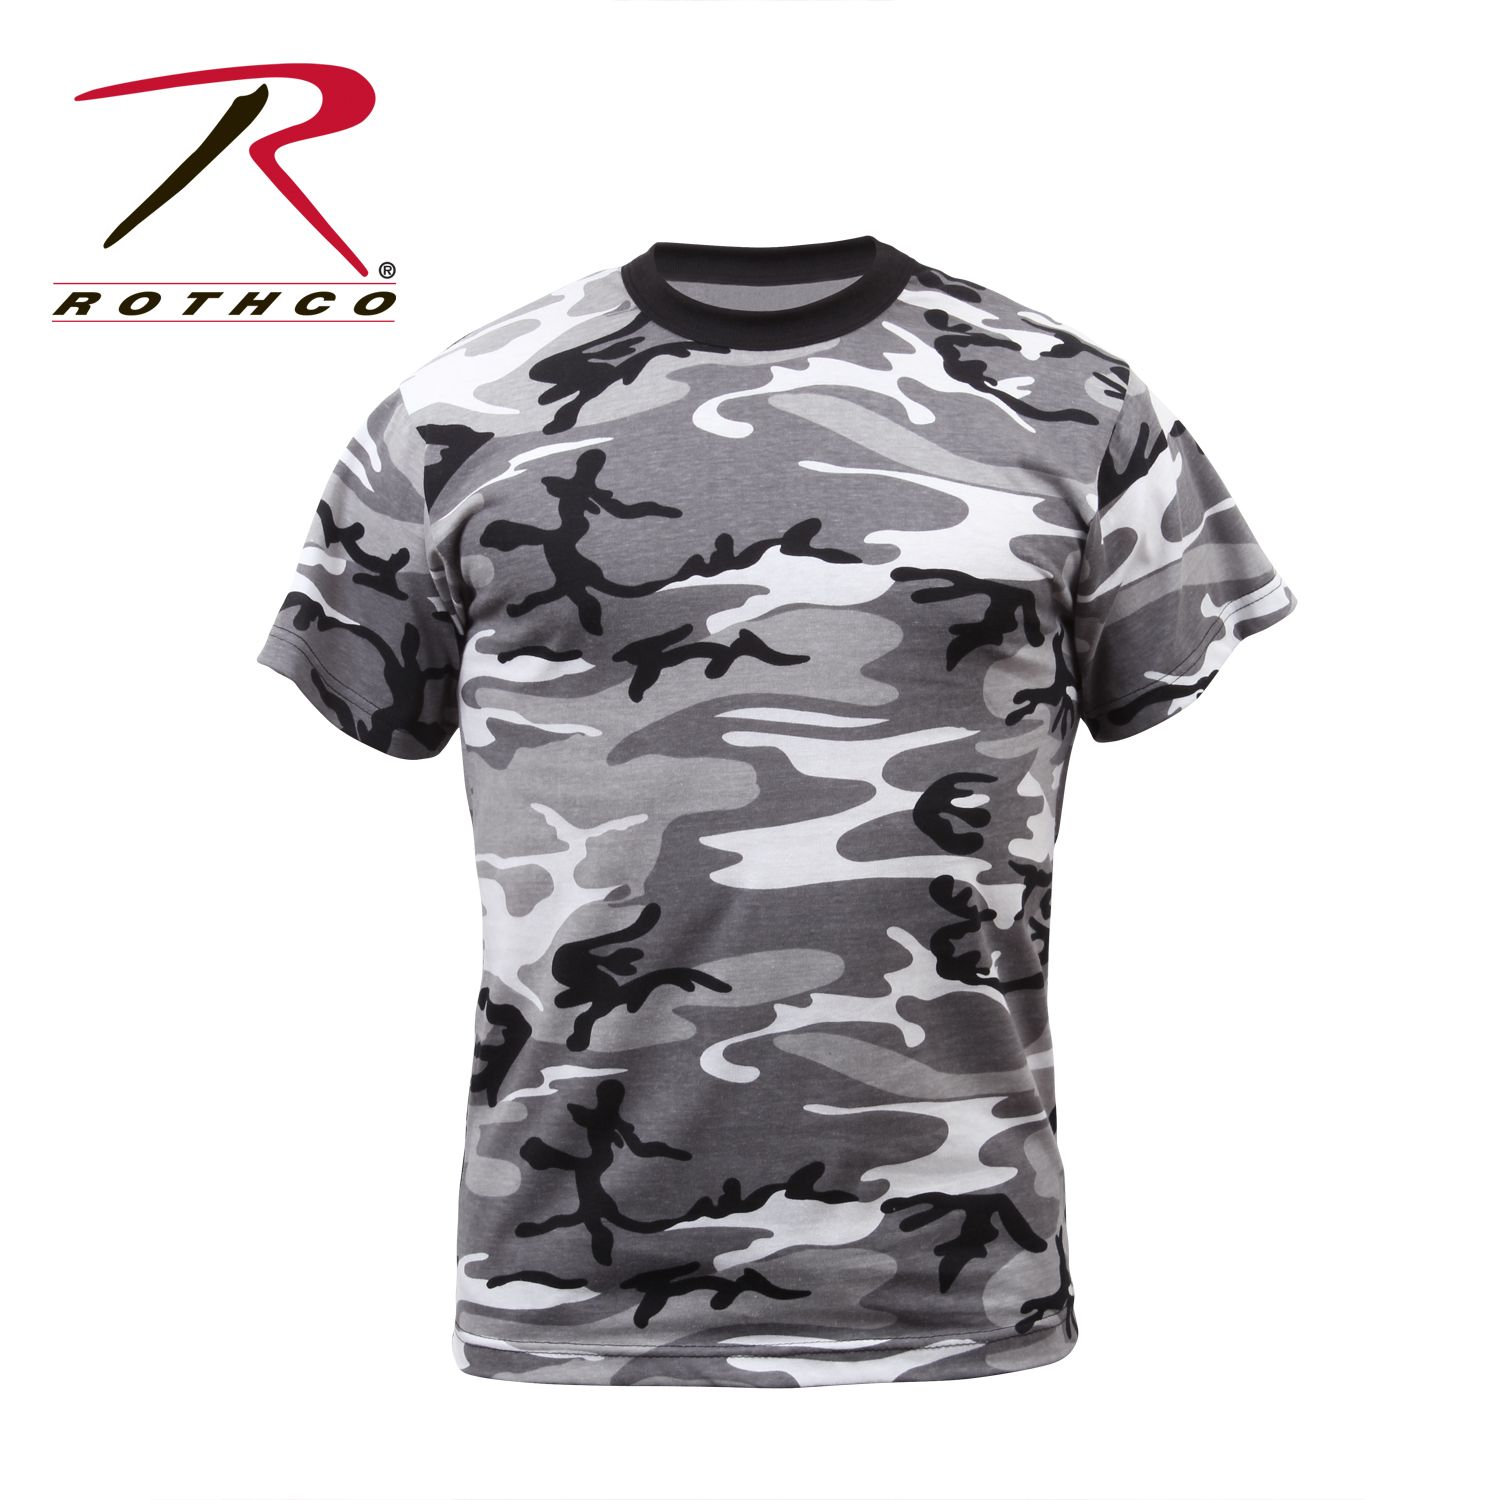 5a60013ea627 Buy Rothco Colored Camo T-Shirts - Rothco Online at Best price - PA